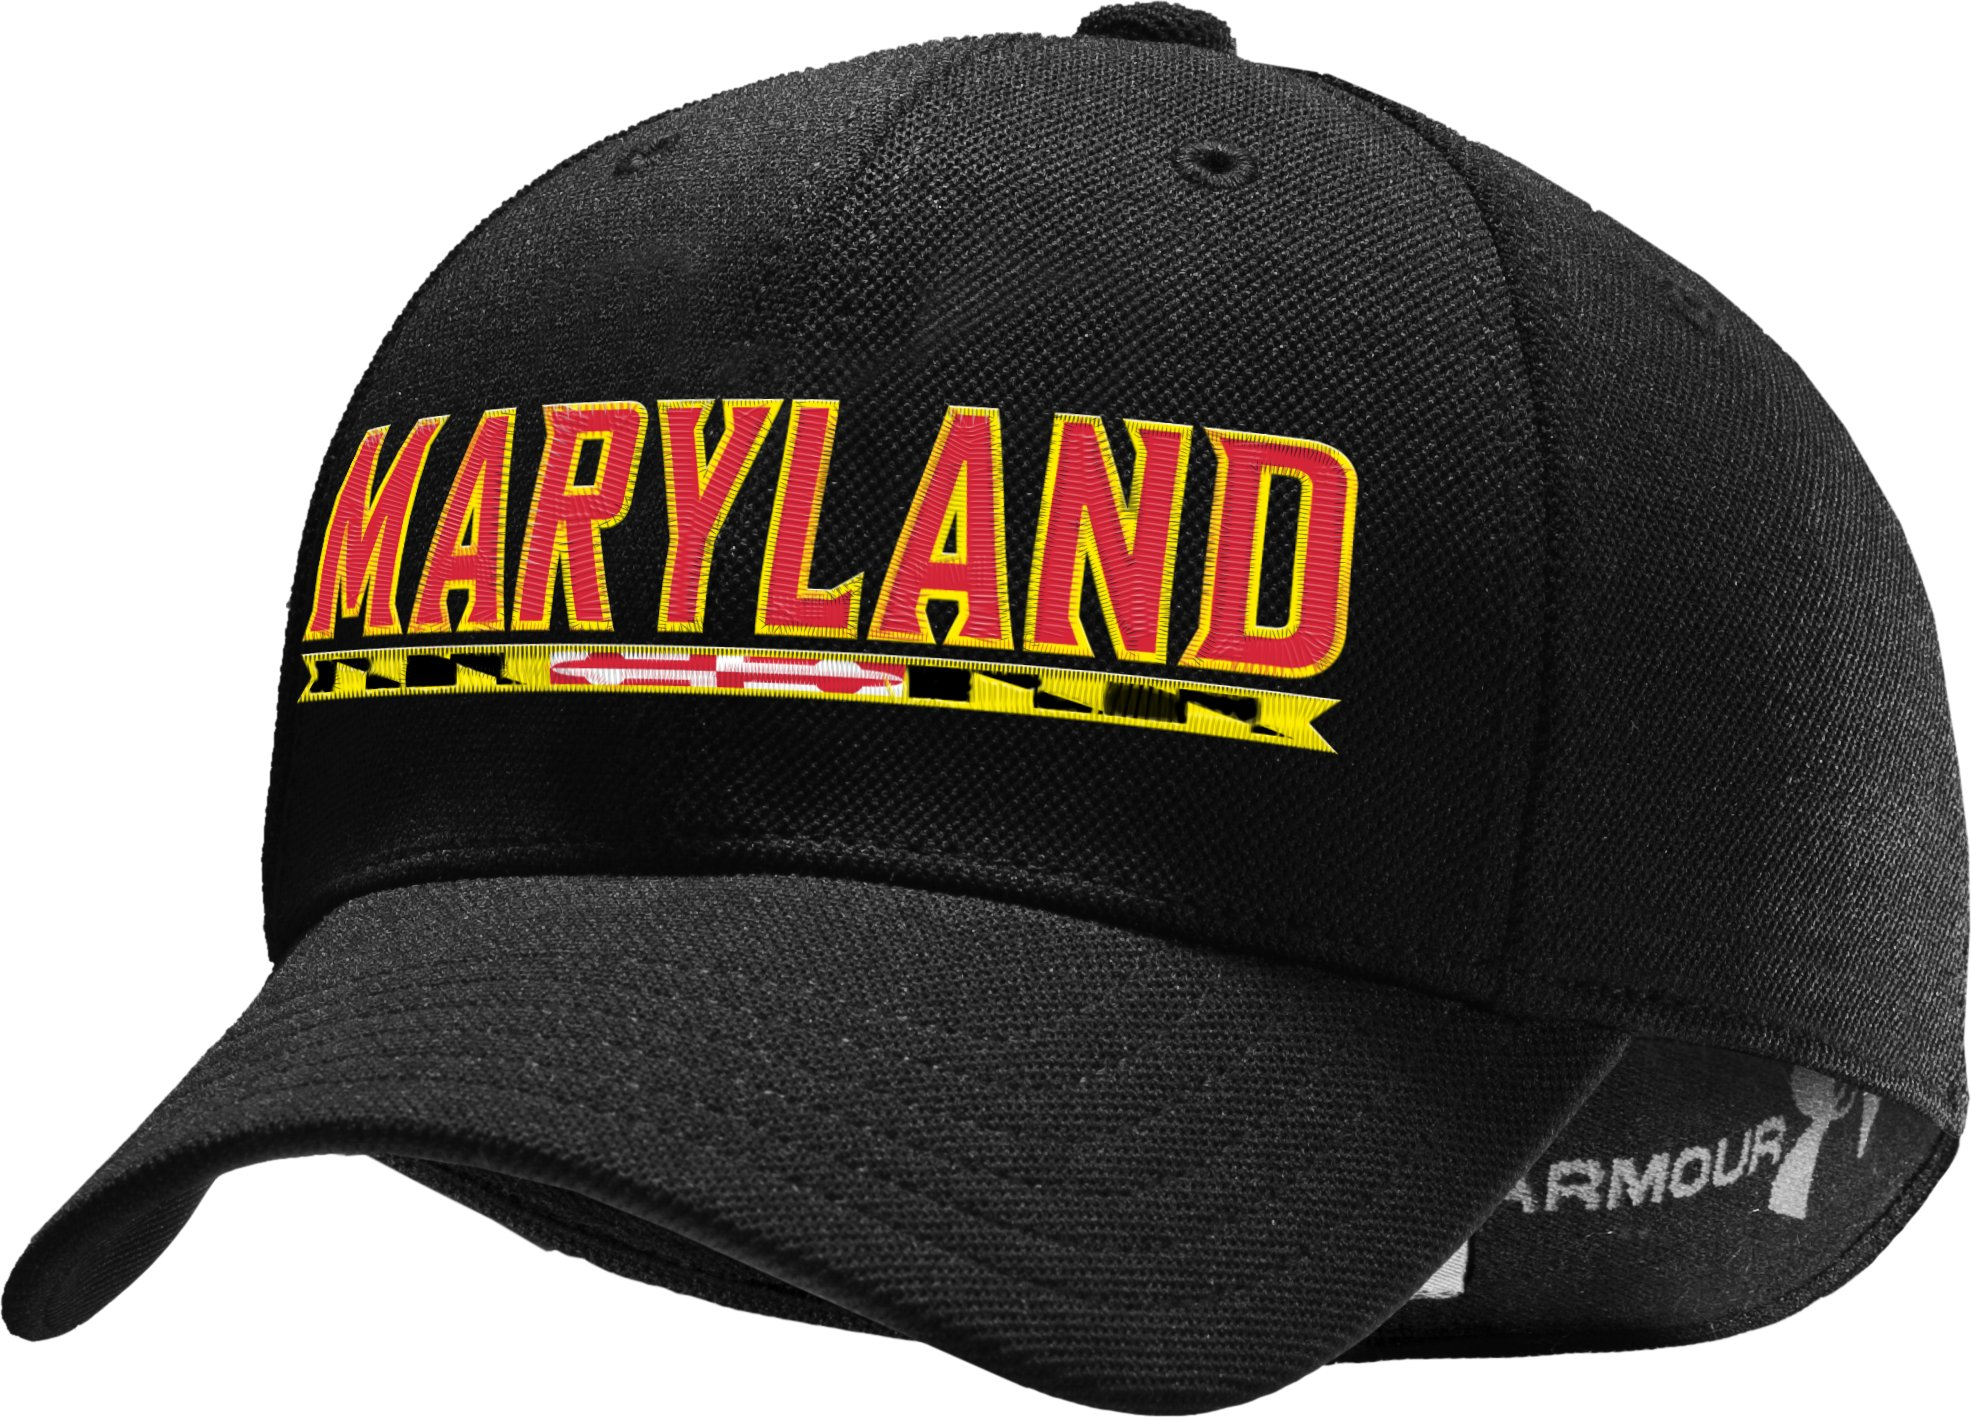 Men's WWP Maryland Stretch Fit Cap, Black , zoomed image